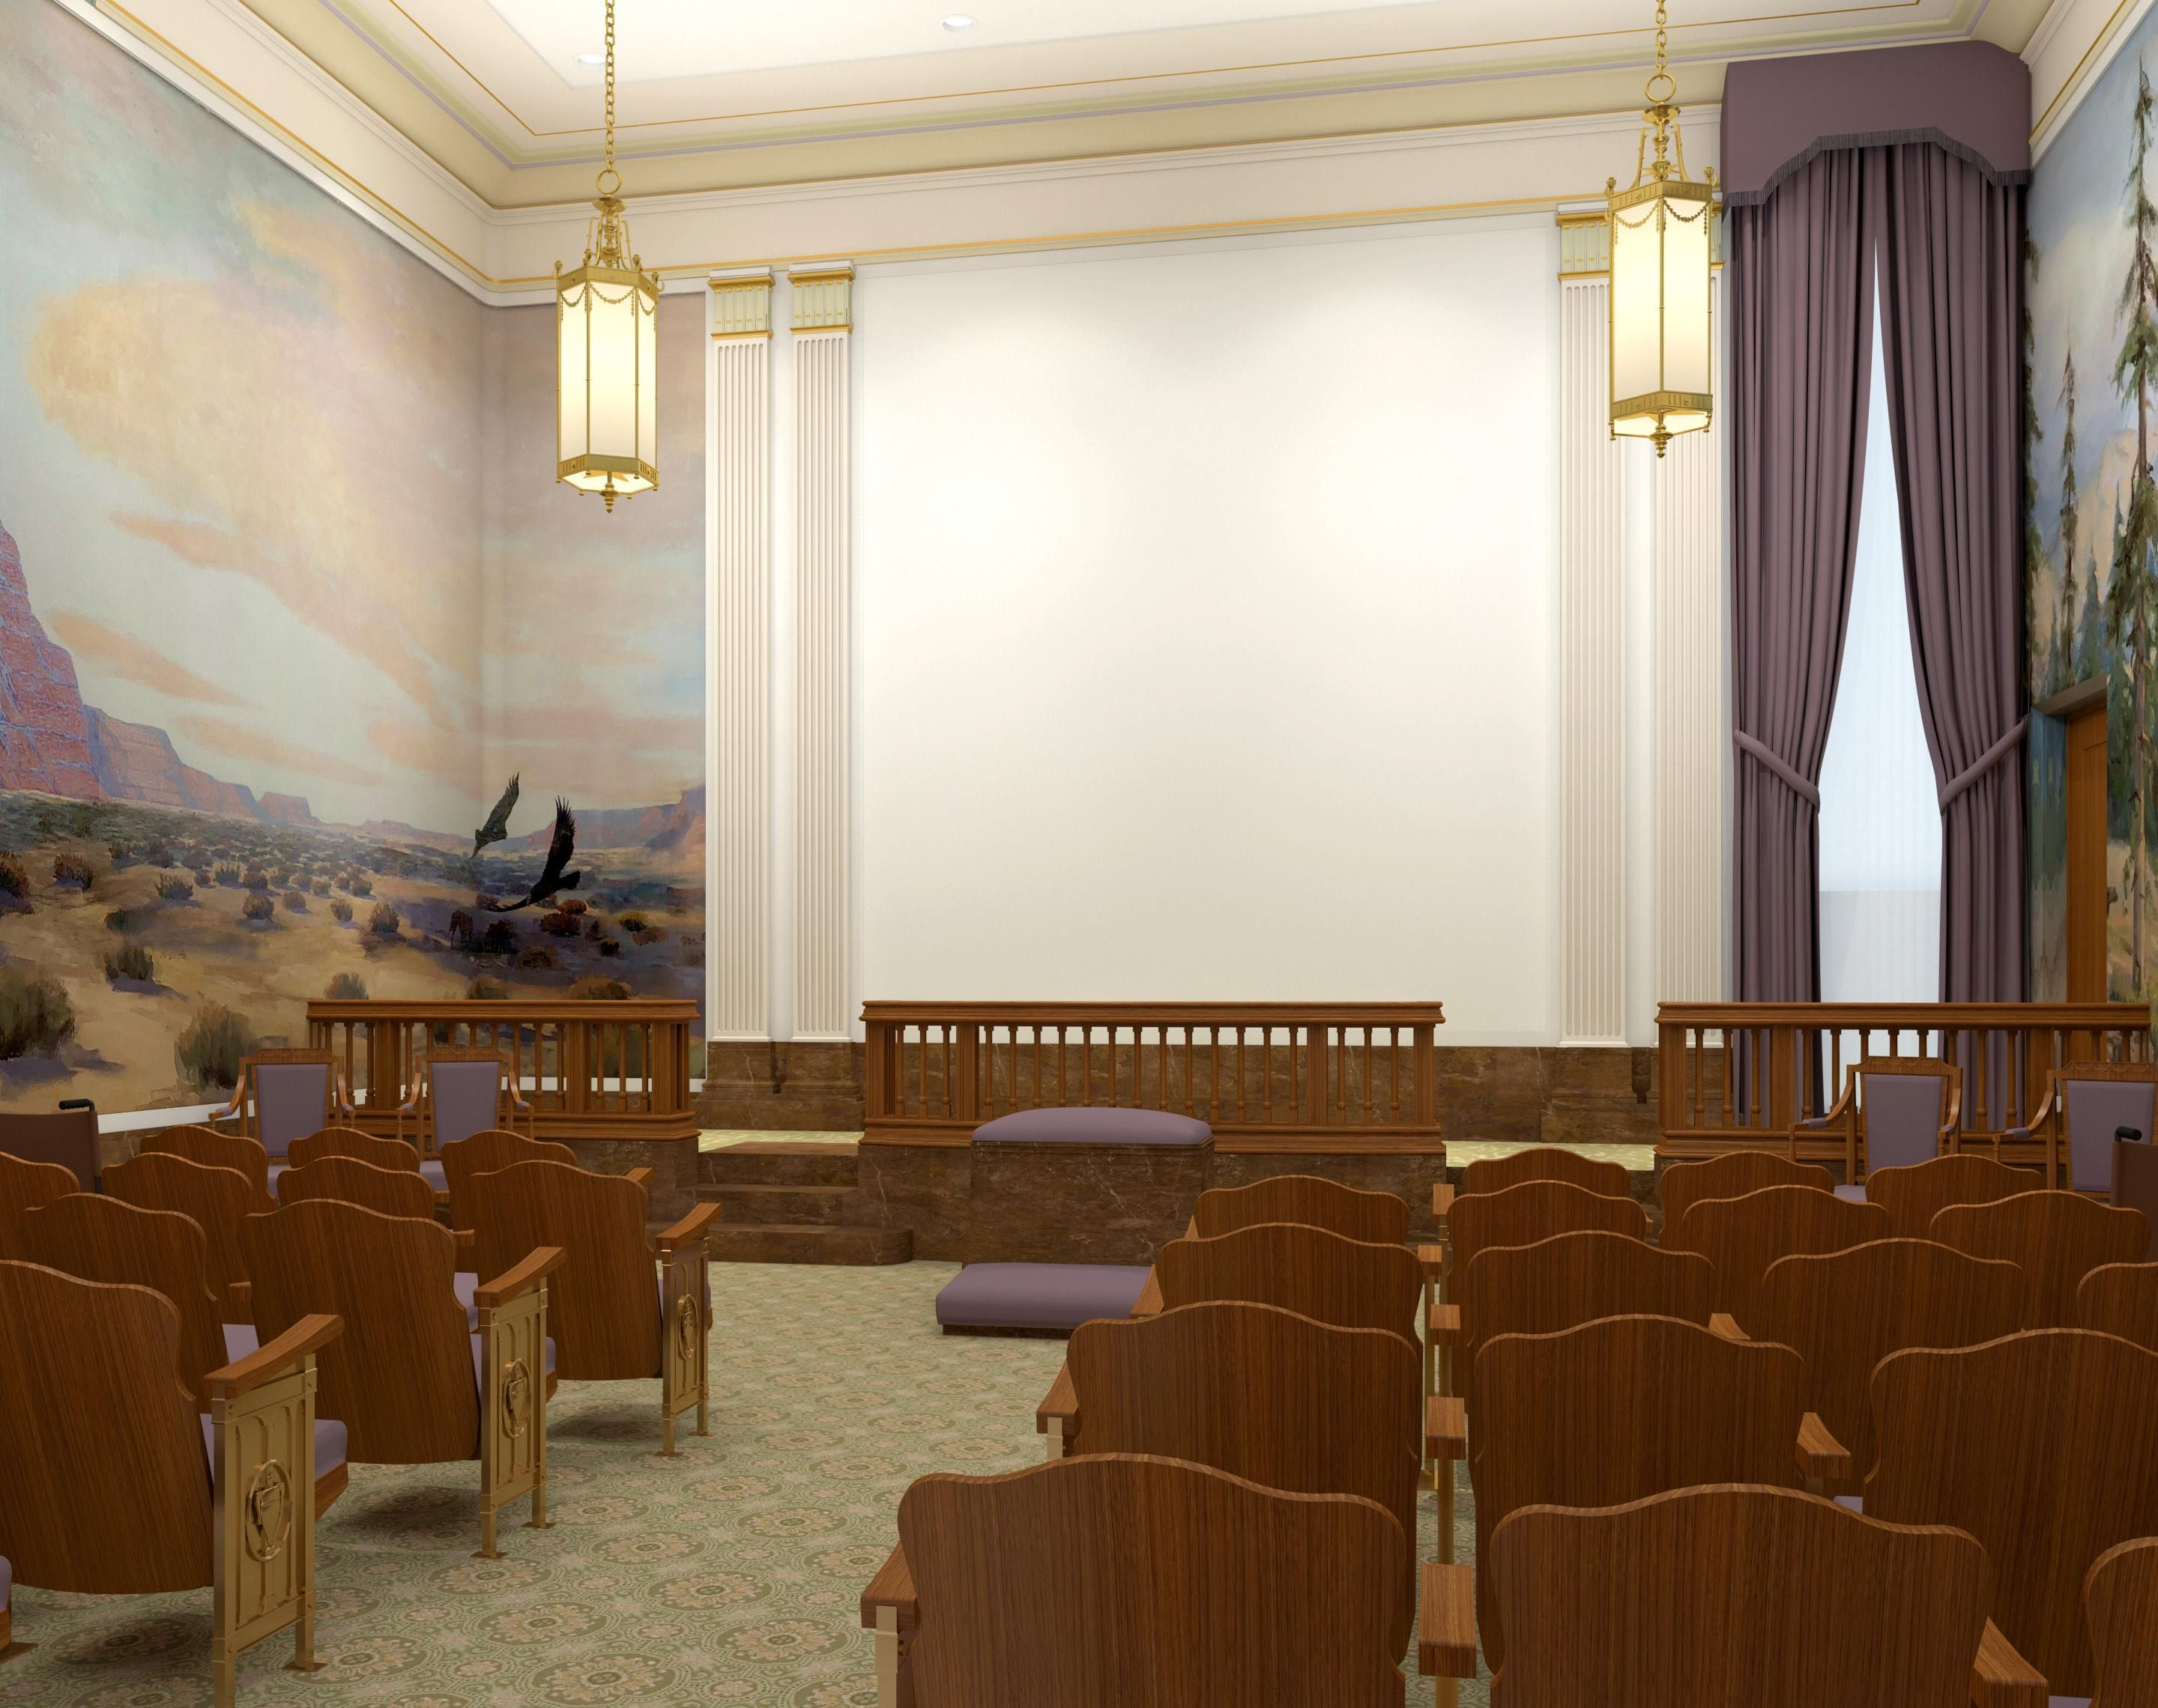 Rendering Of The World Room In The Mesa Arizona Temple Photo The Church Of Jesus Christ Of Latter Day Saints Mesa Temple Temple Church